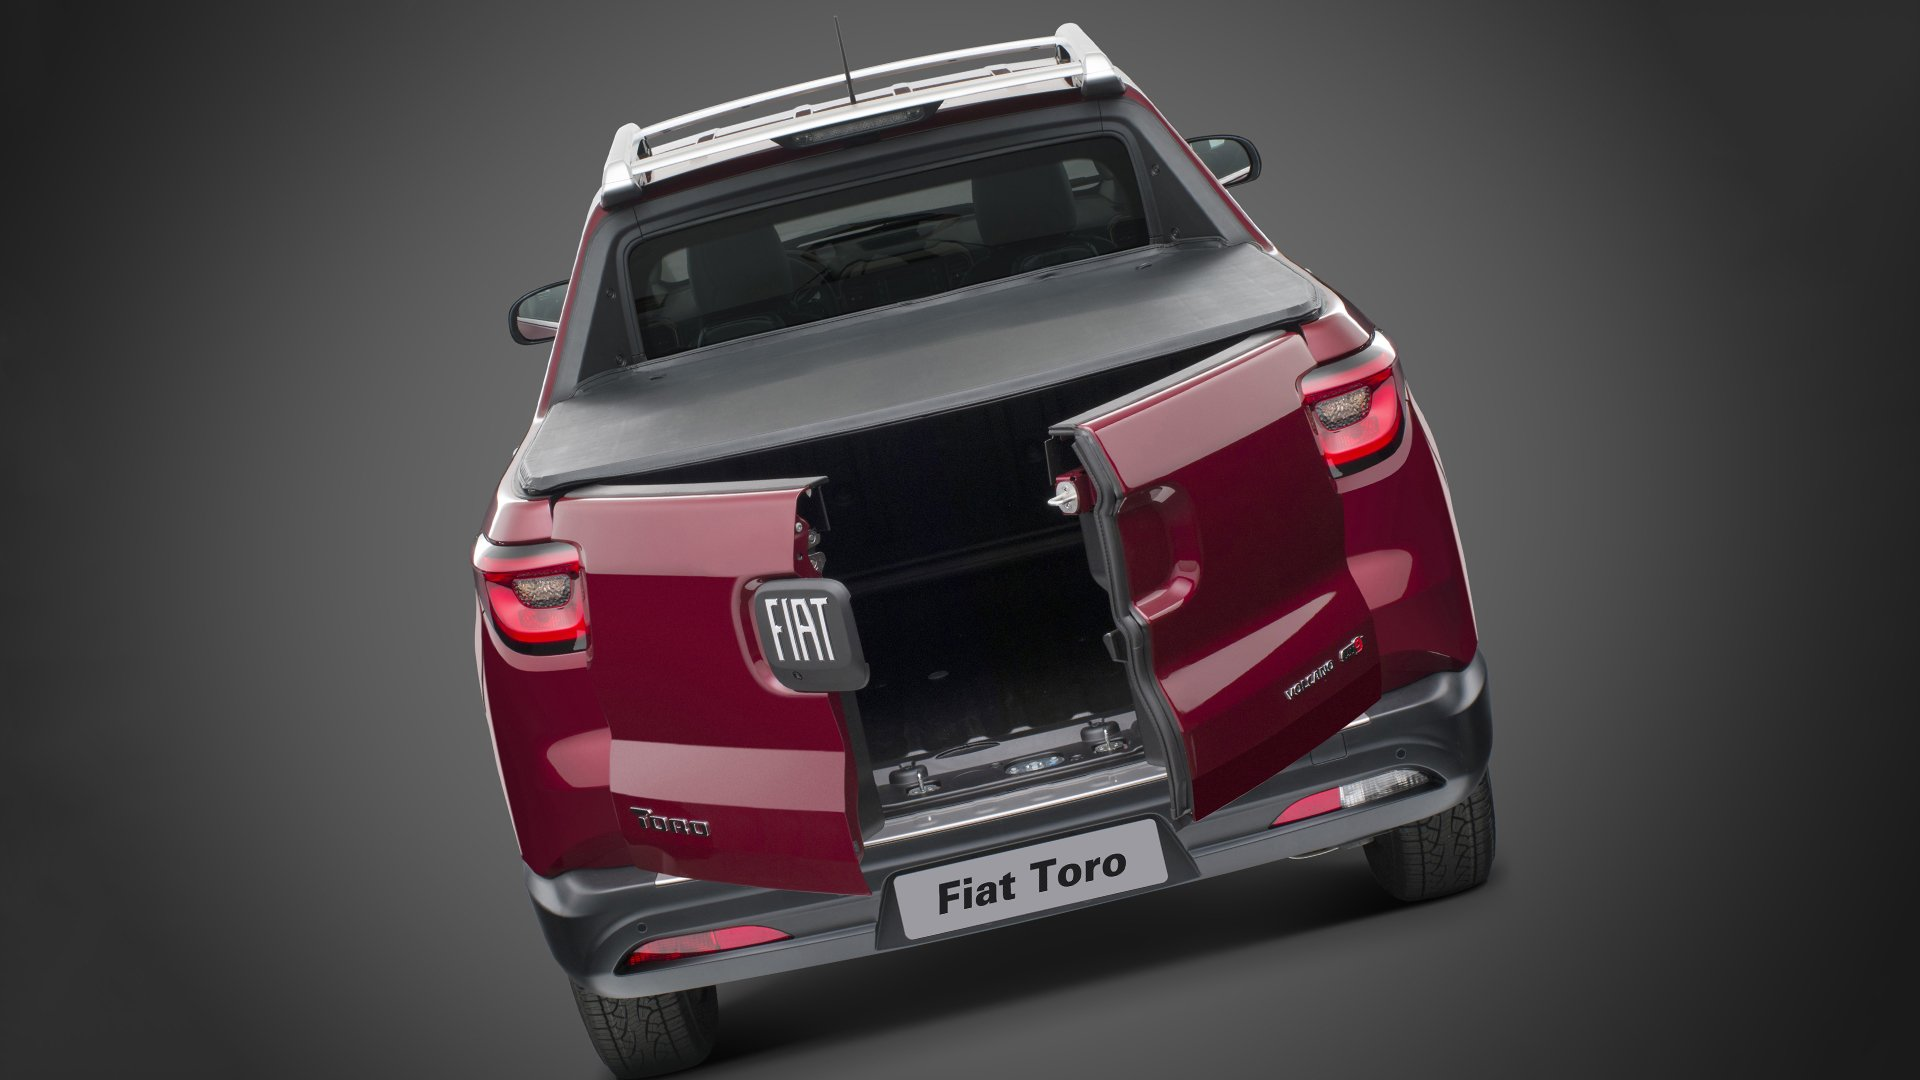 New 2019 Fiat Toro Specs Features